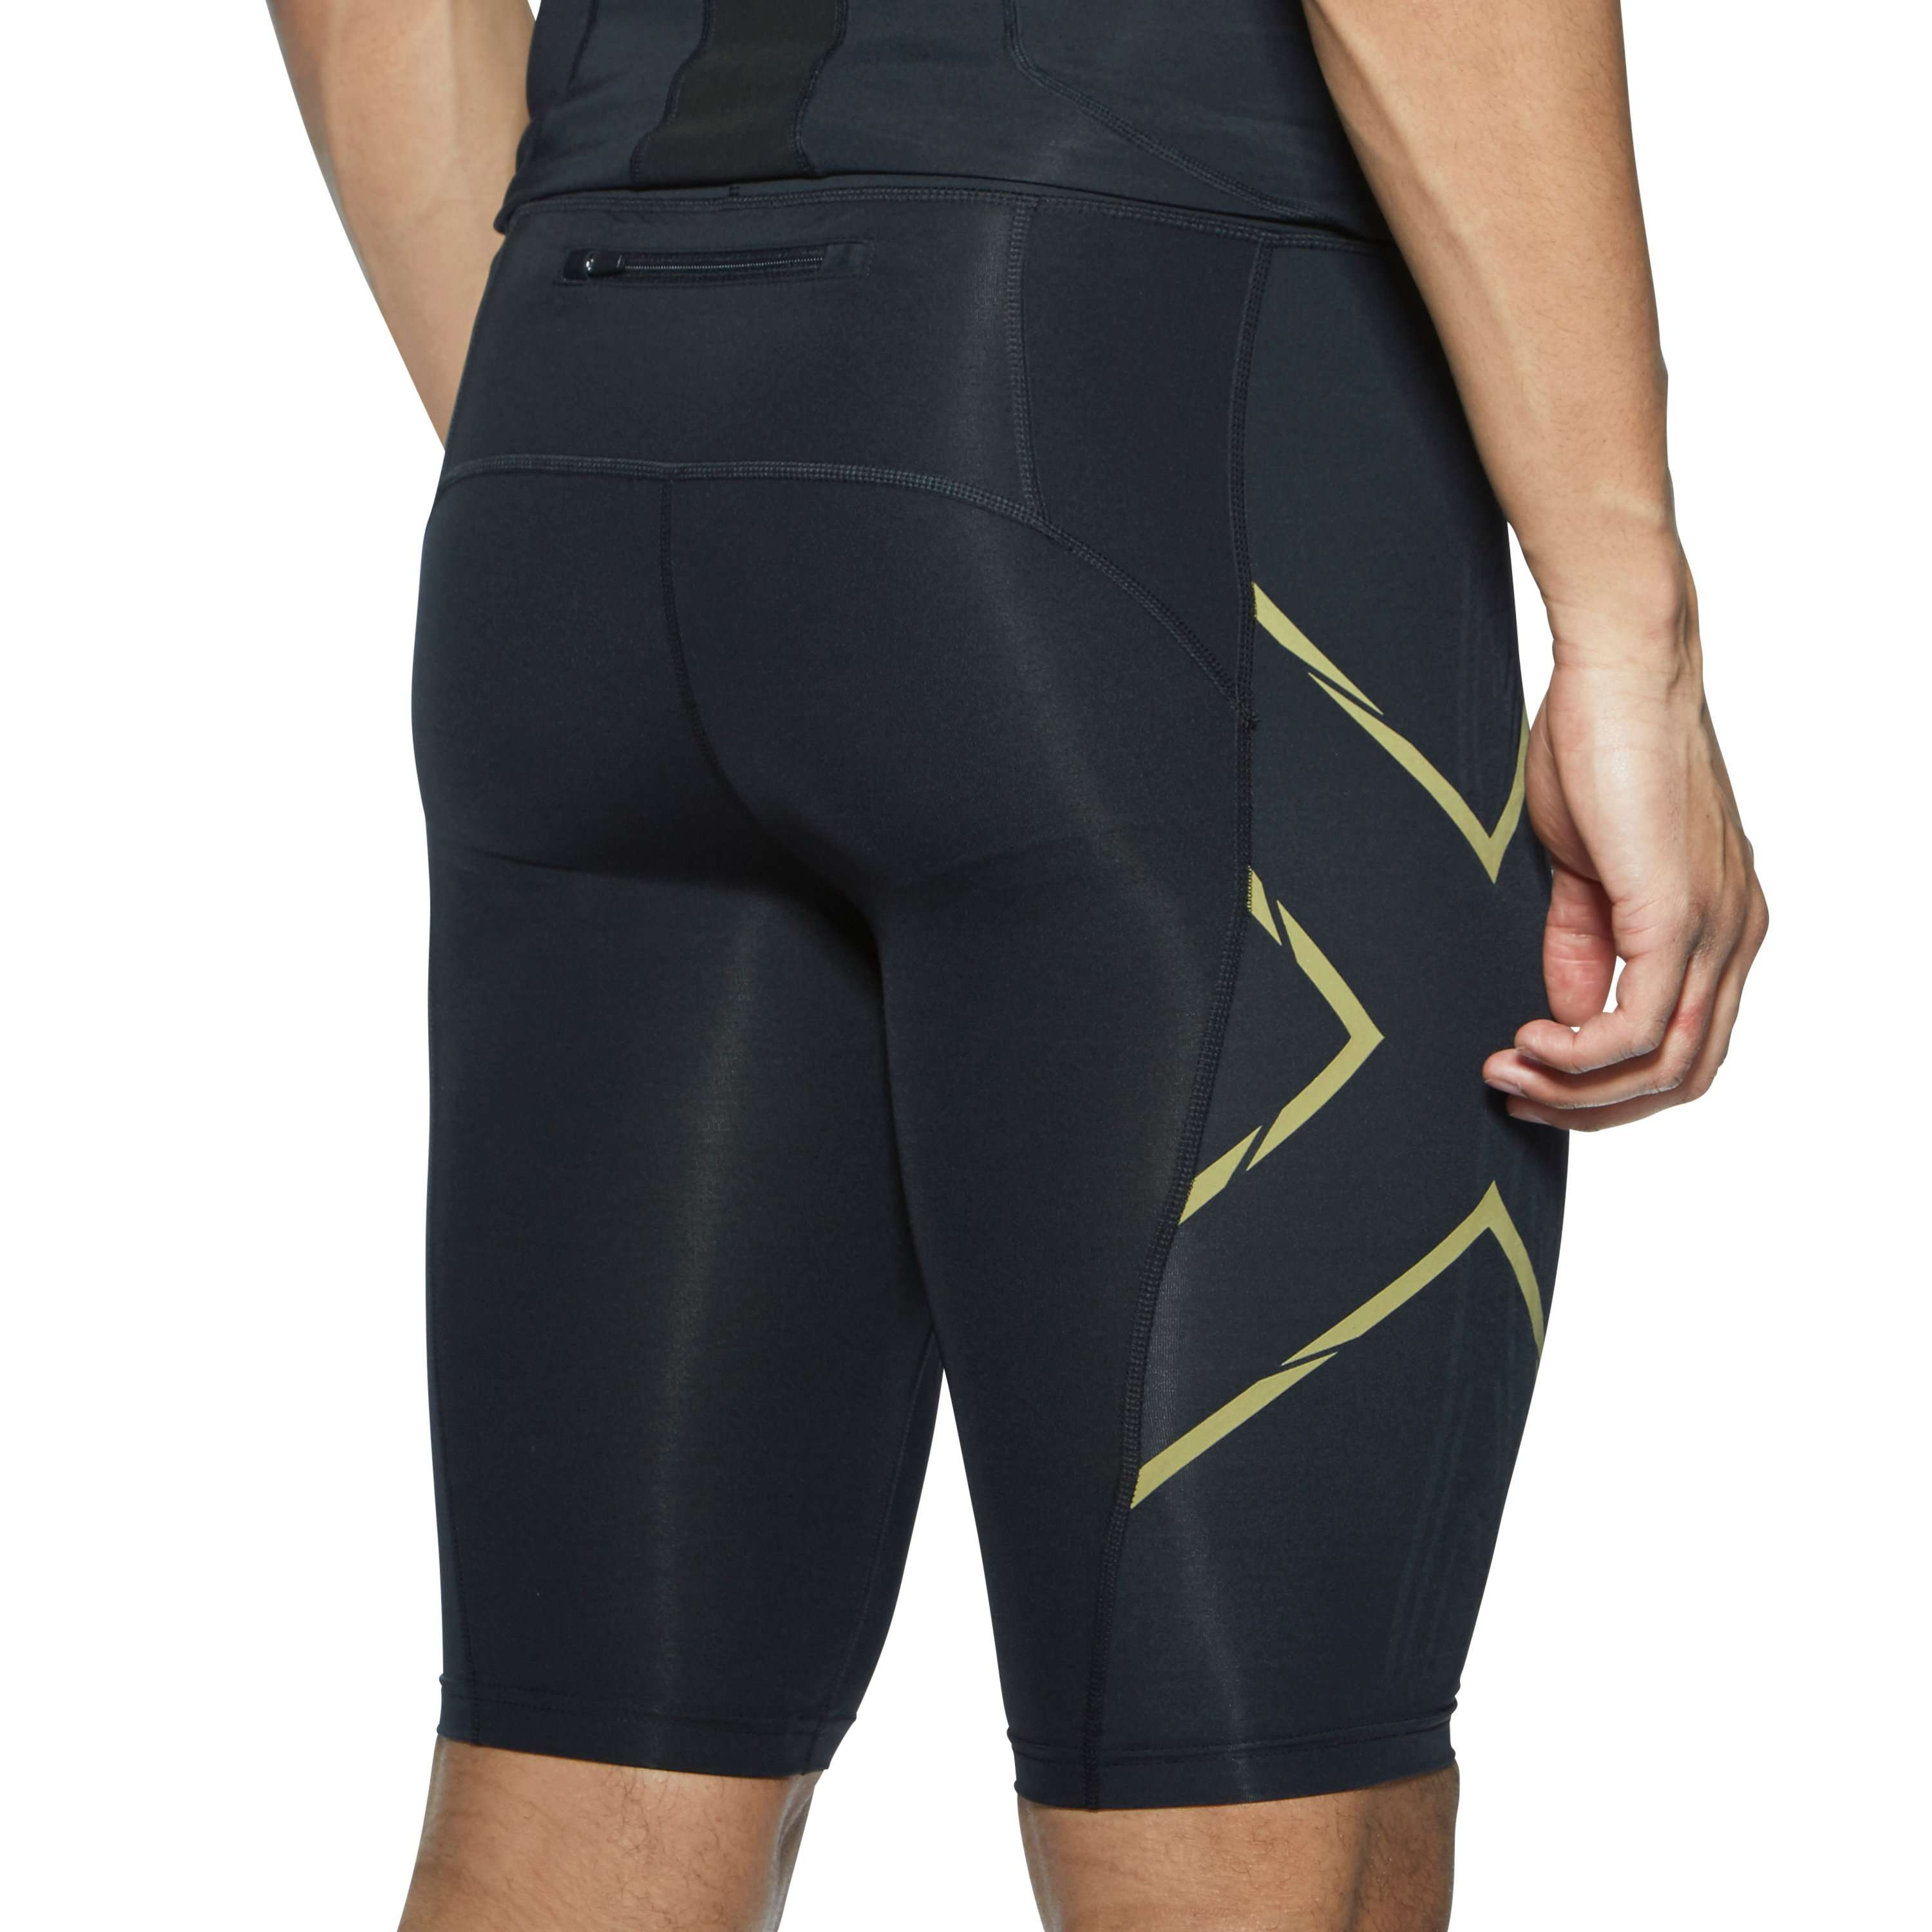 2XU Elite MCS Men's Compression Shorts